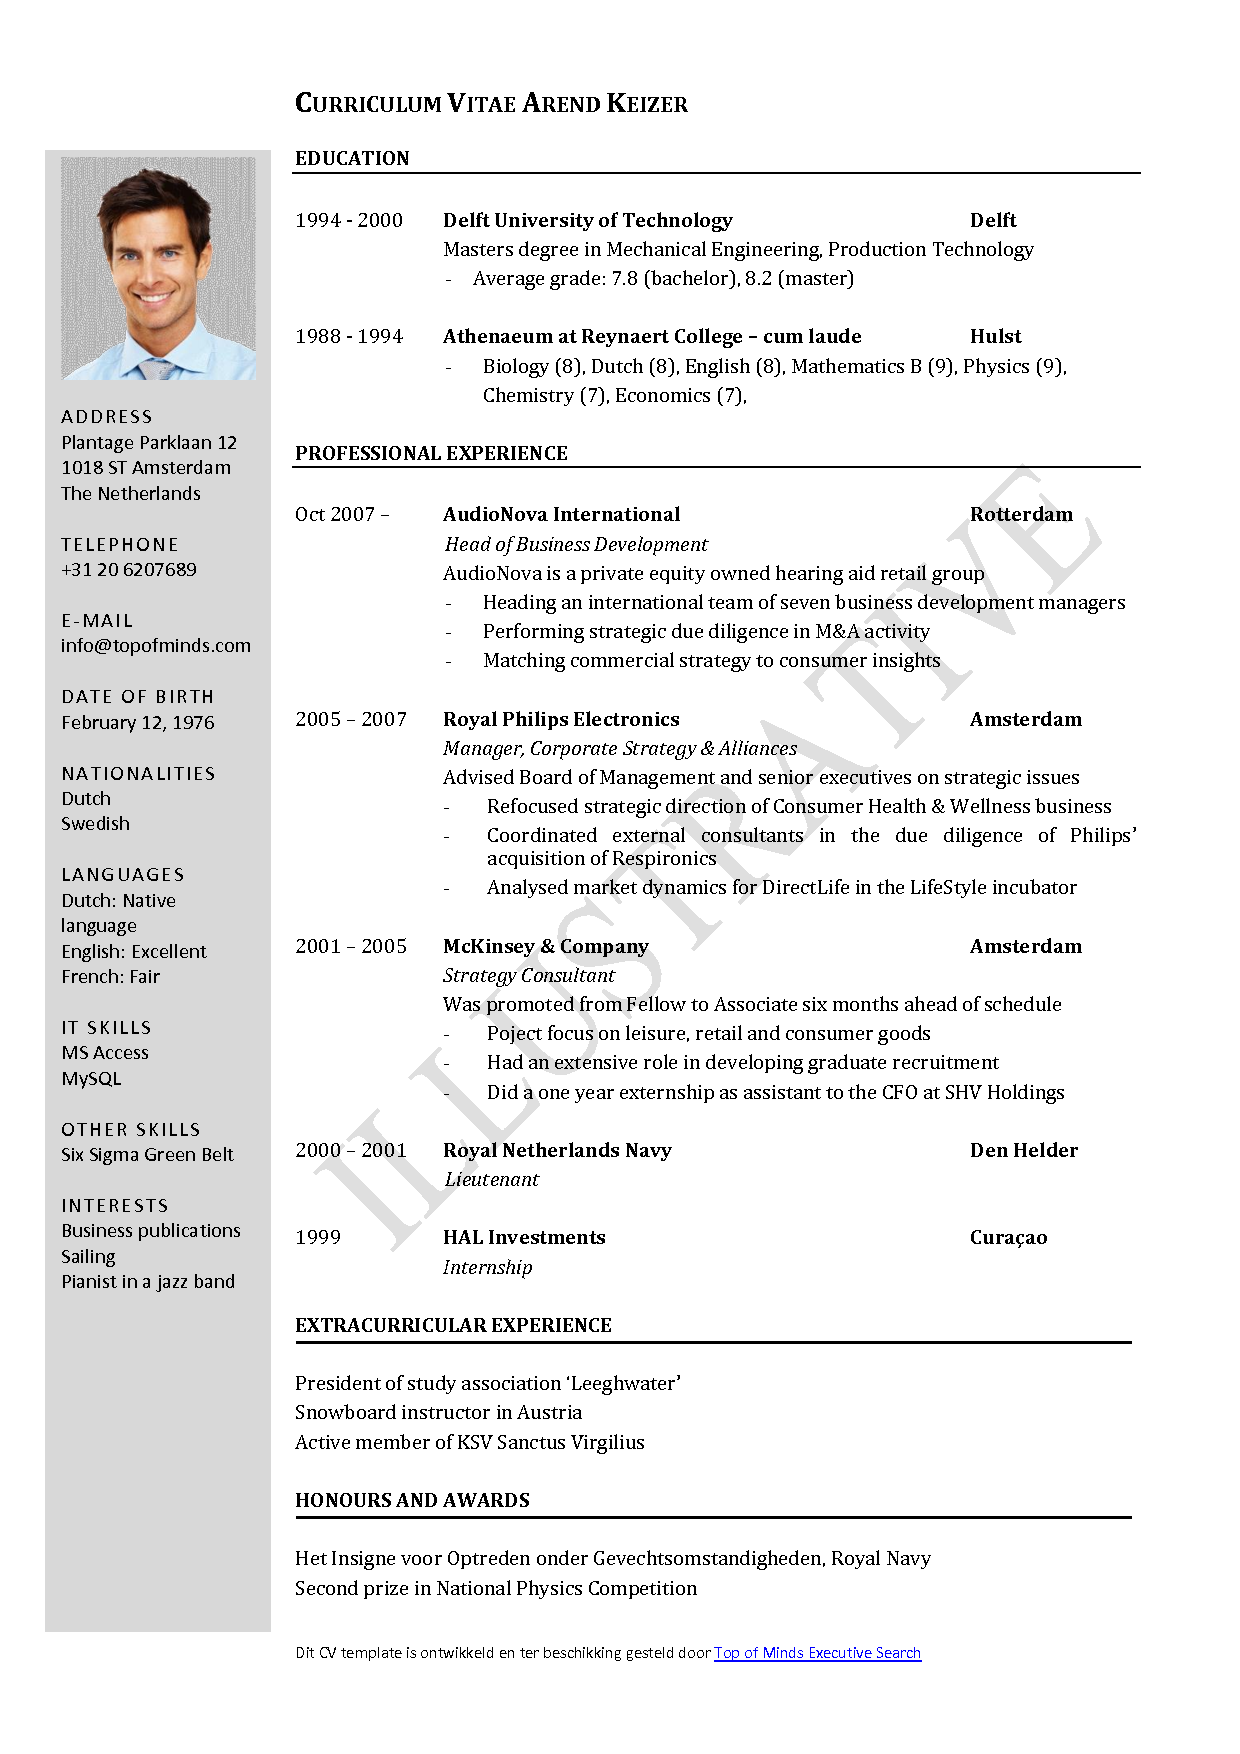 curriculum vitae template word cv template when do you need to write your own cv curriculum viate or resume here you will some templates tips and advices to write the perfect cv